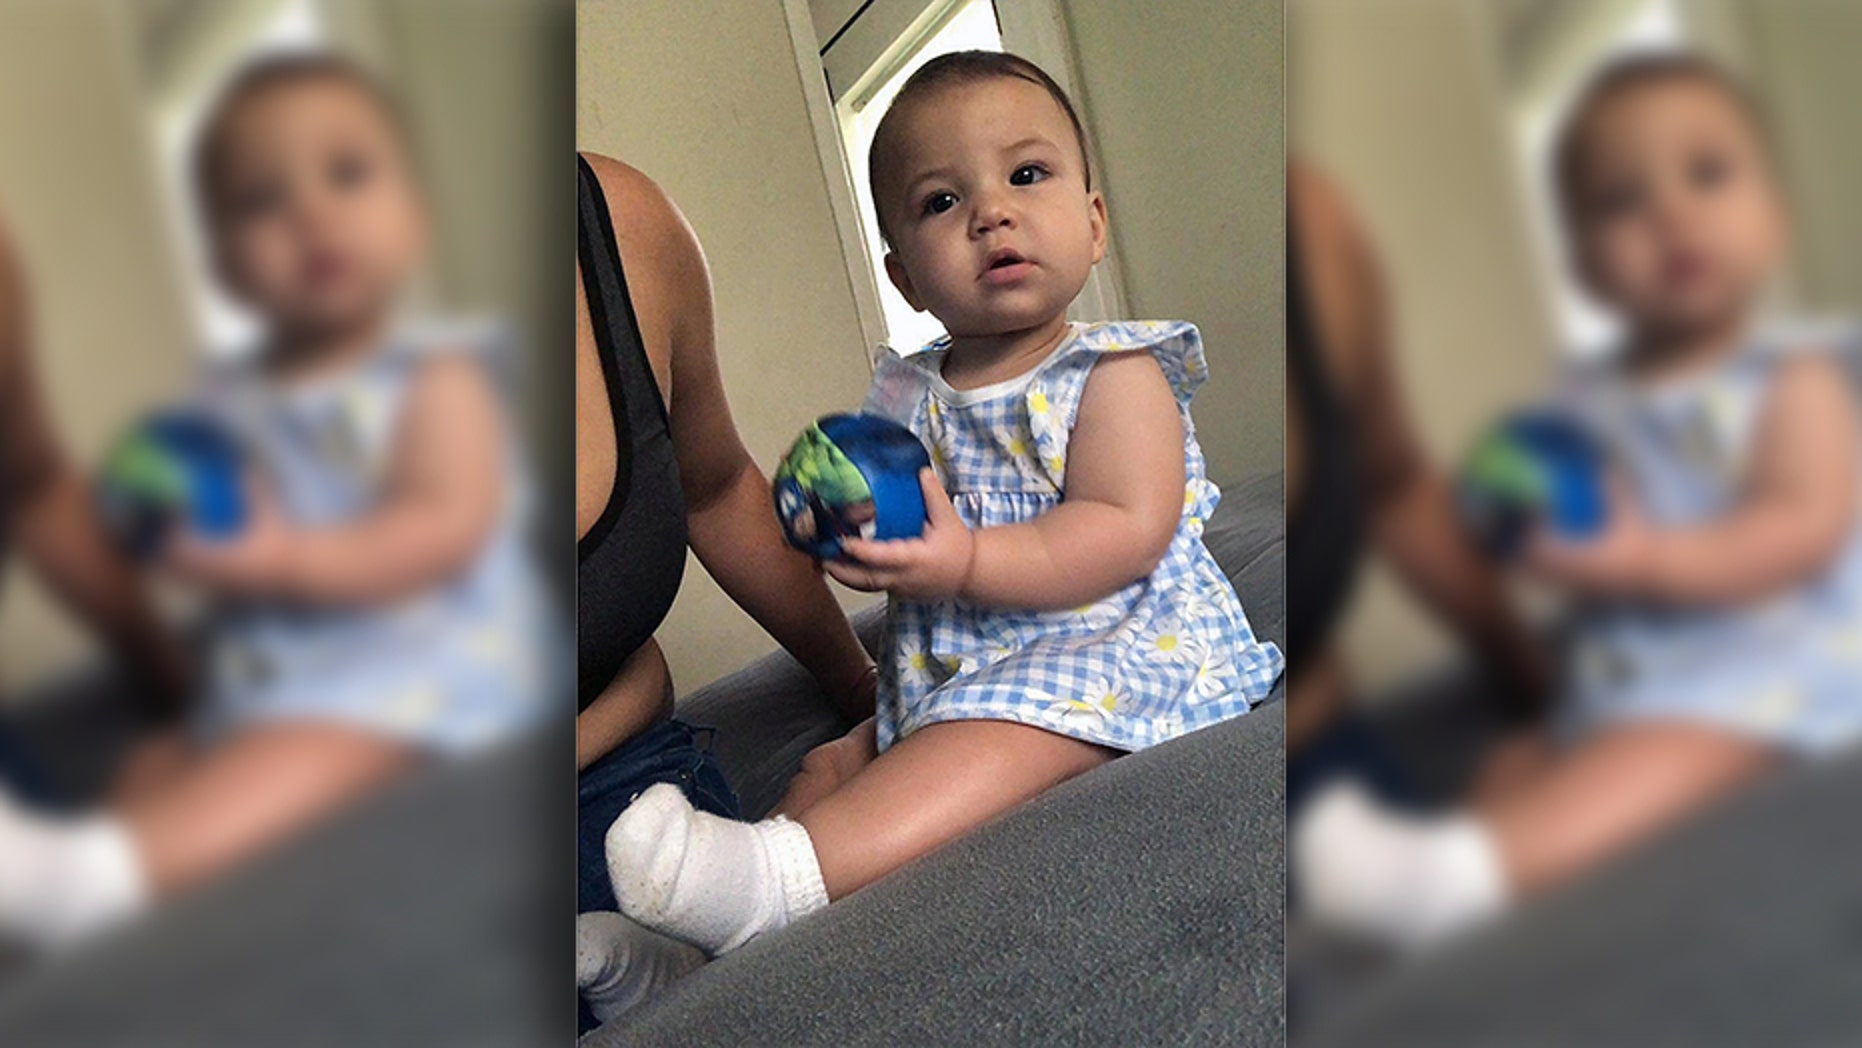 Liana Valino, a 9-month-old in Florida, was fatally mauled by a pit bull as she sat in a bouncy chair. (Facebook)